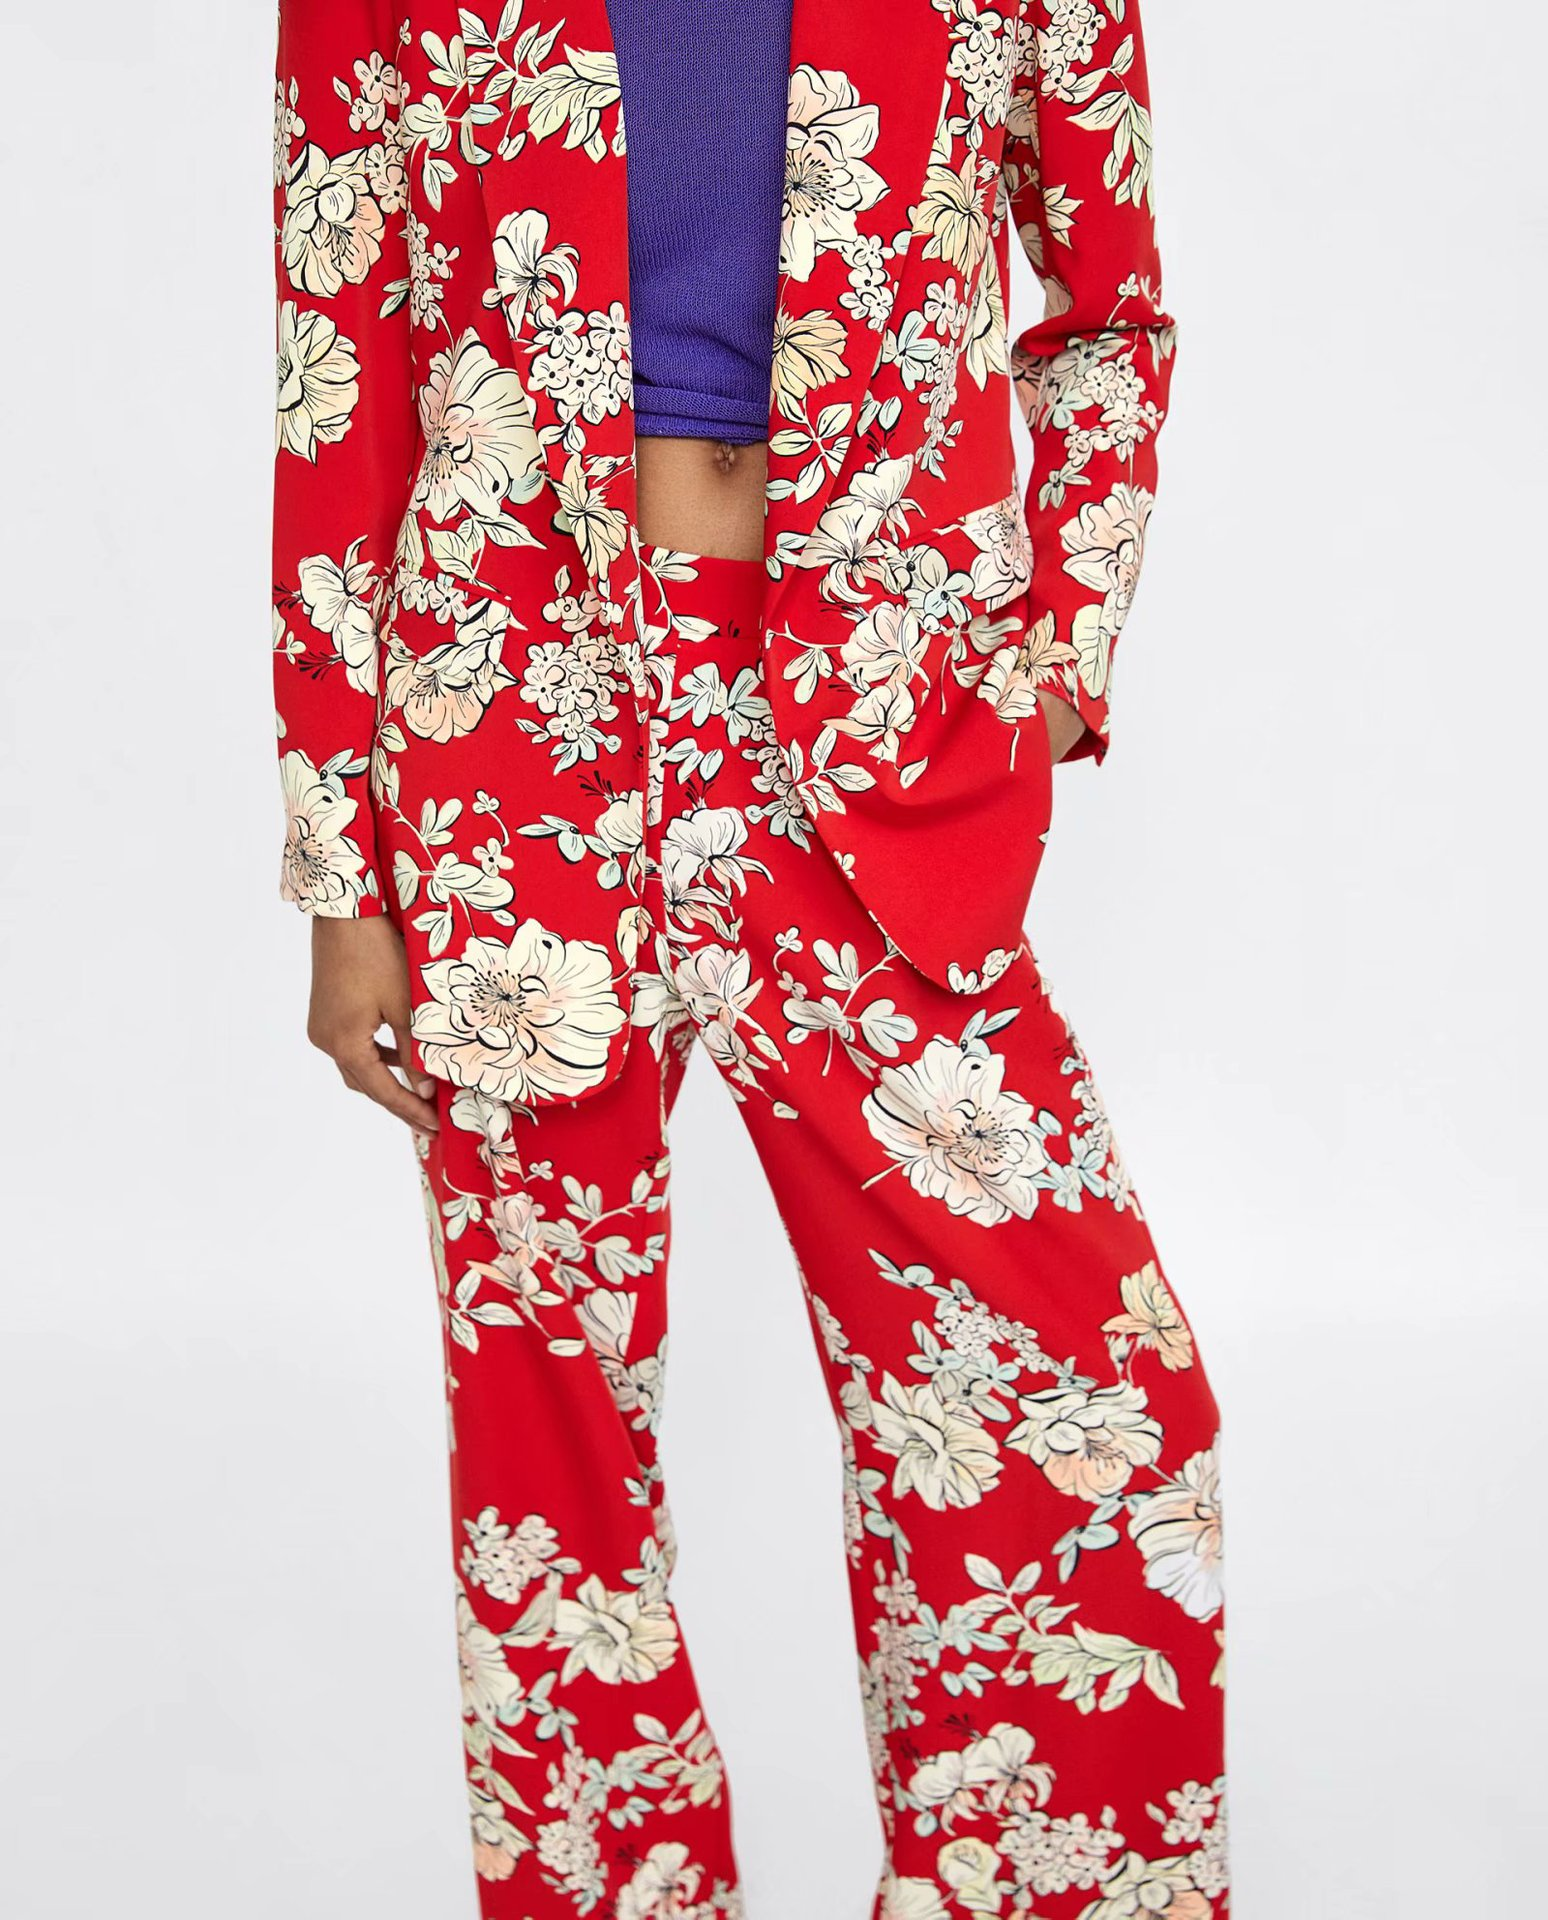 Polyester Fashioncoat(Red-S) NHAM4457-Red-S